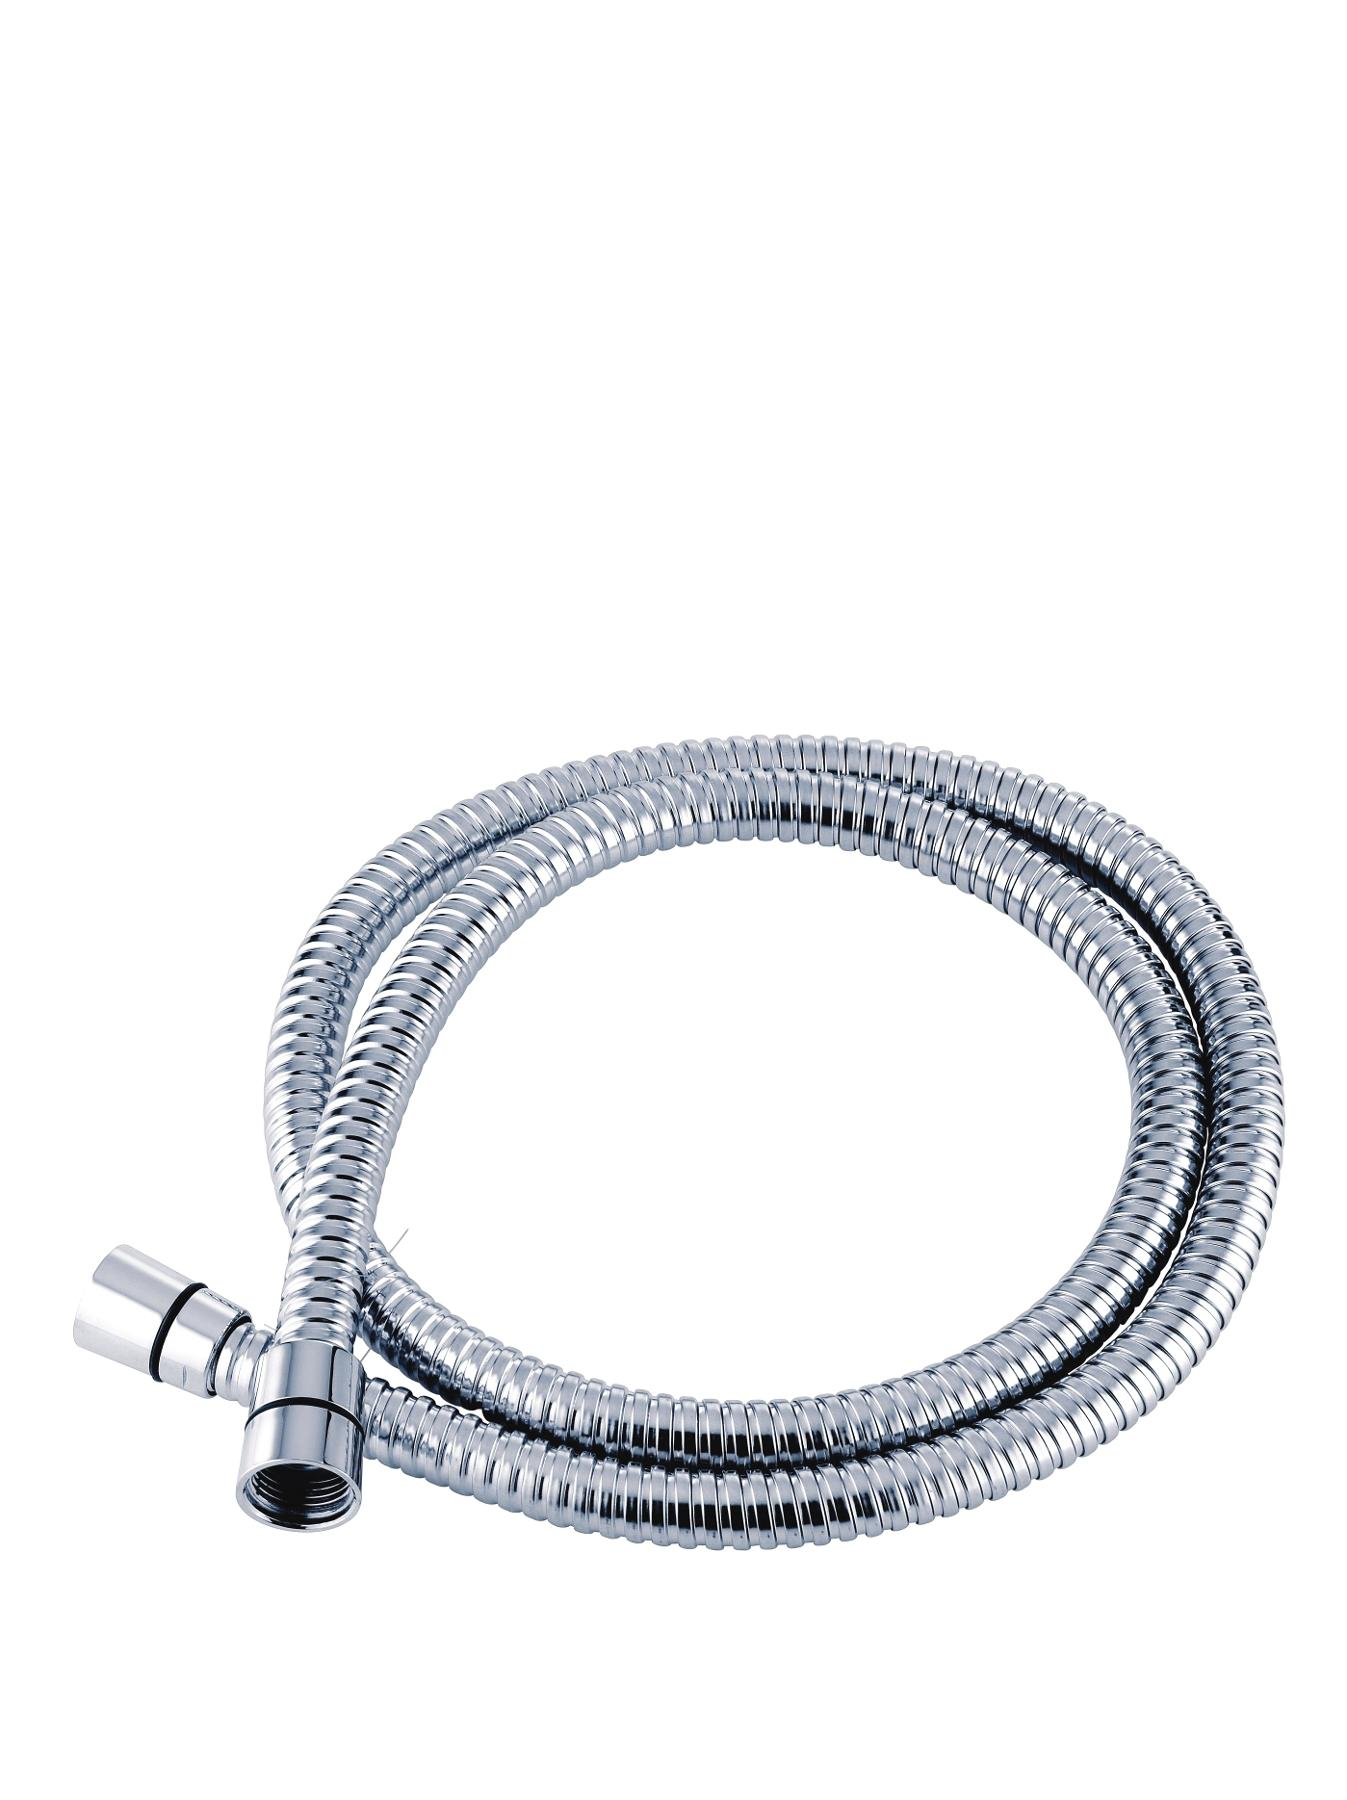 1.25m Chrome Shower Hose